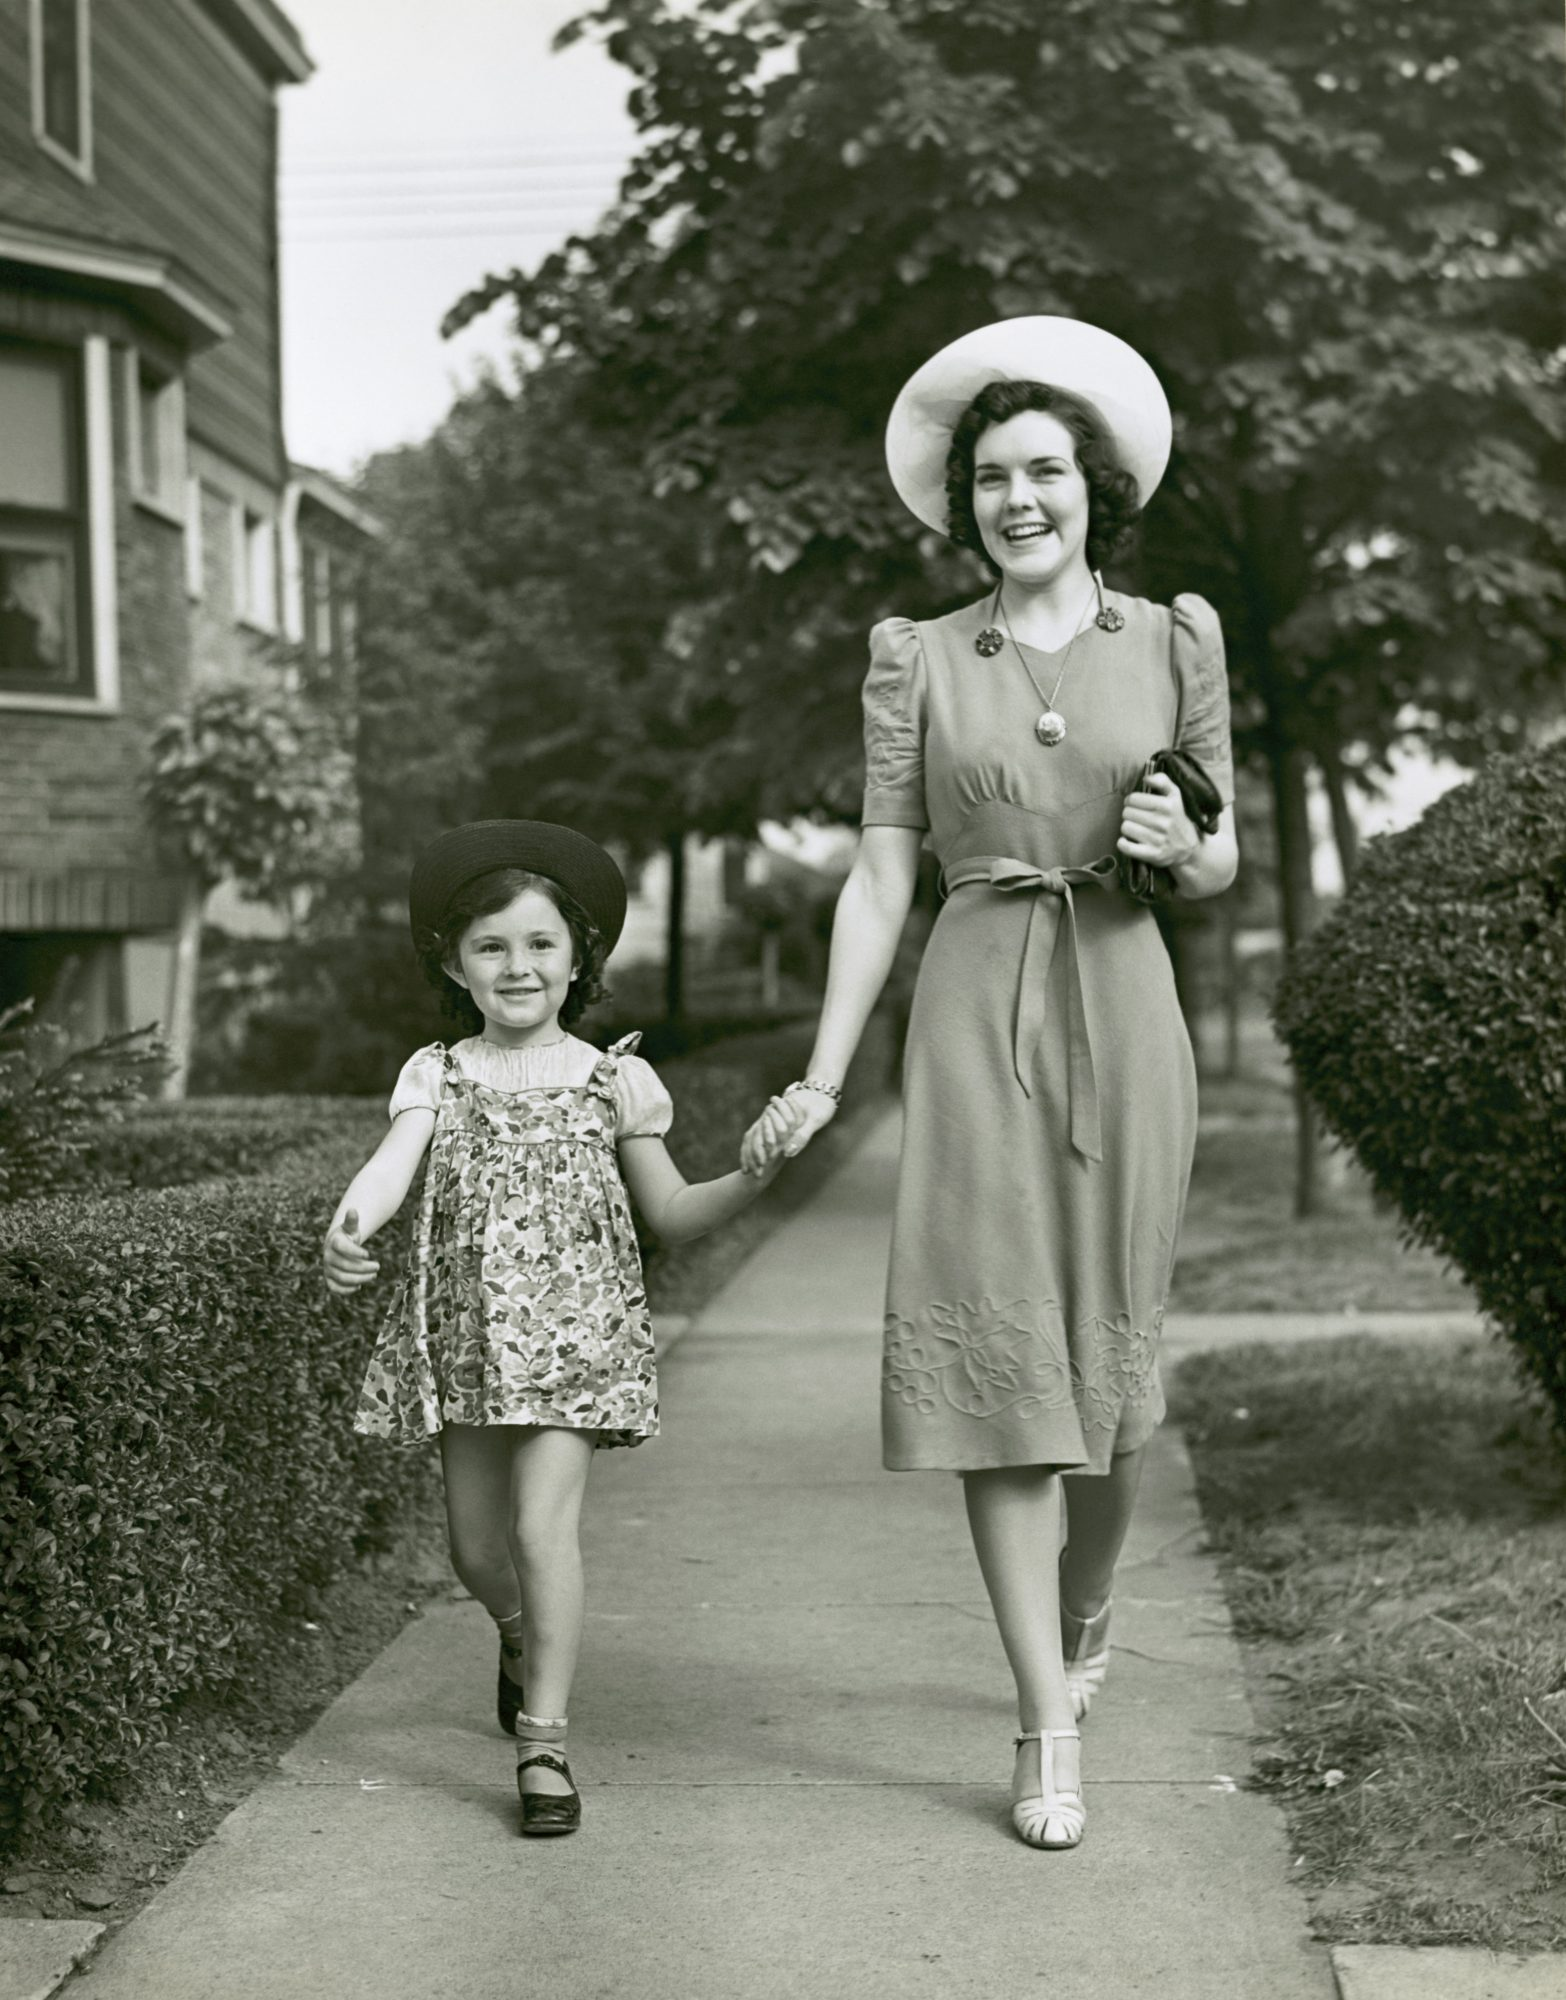 woman walking with child